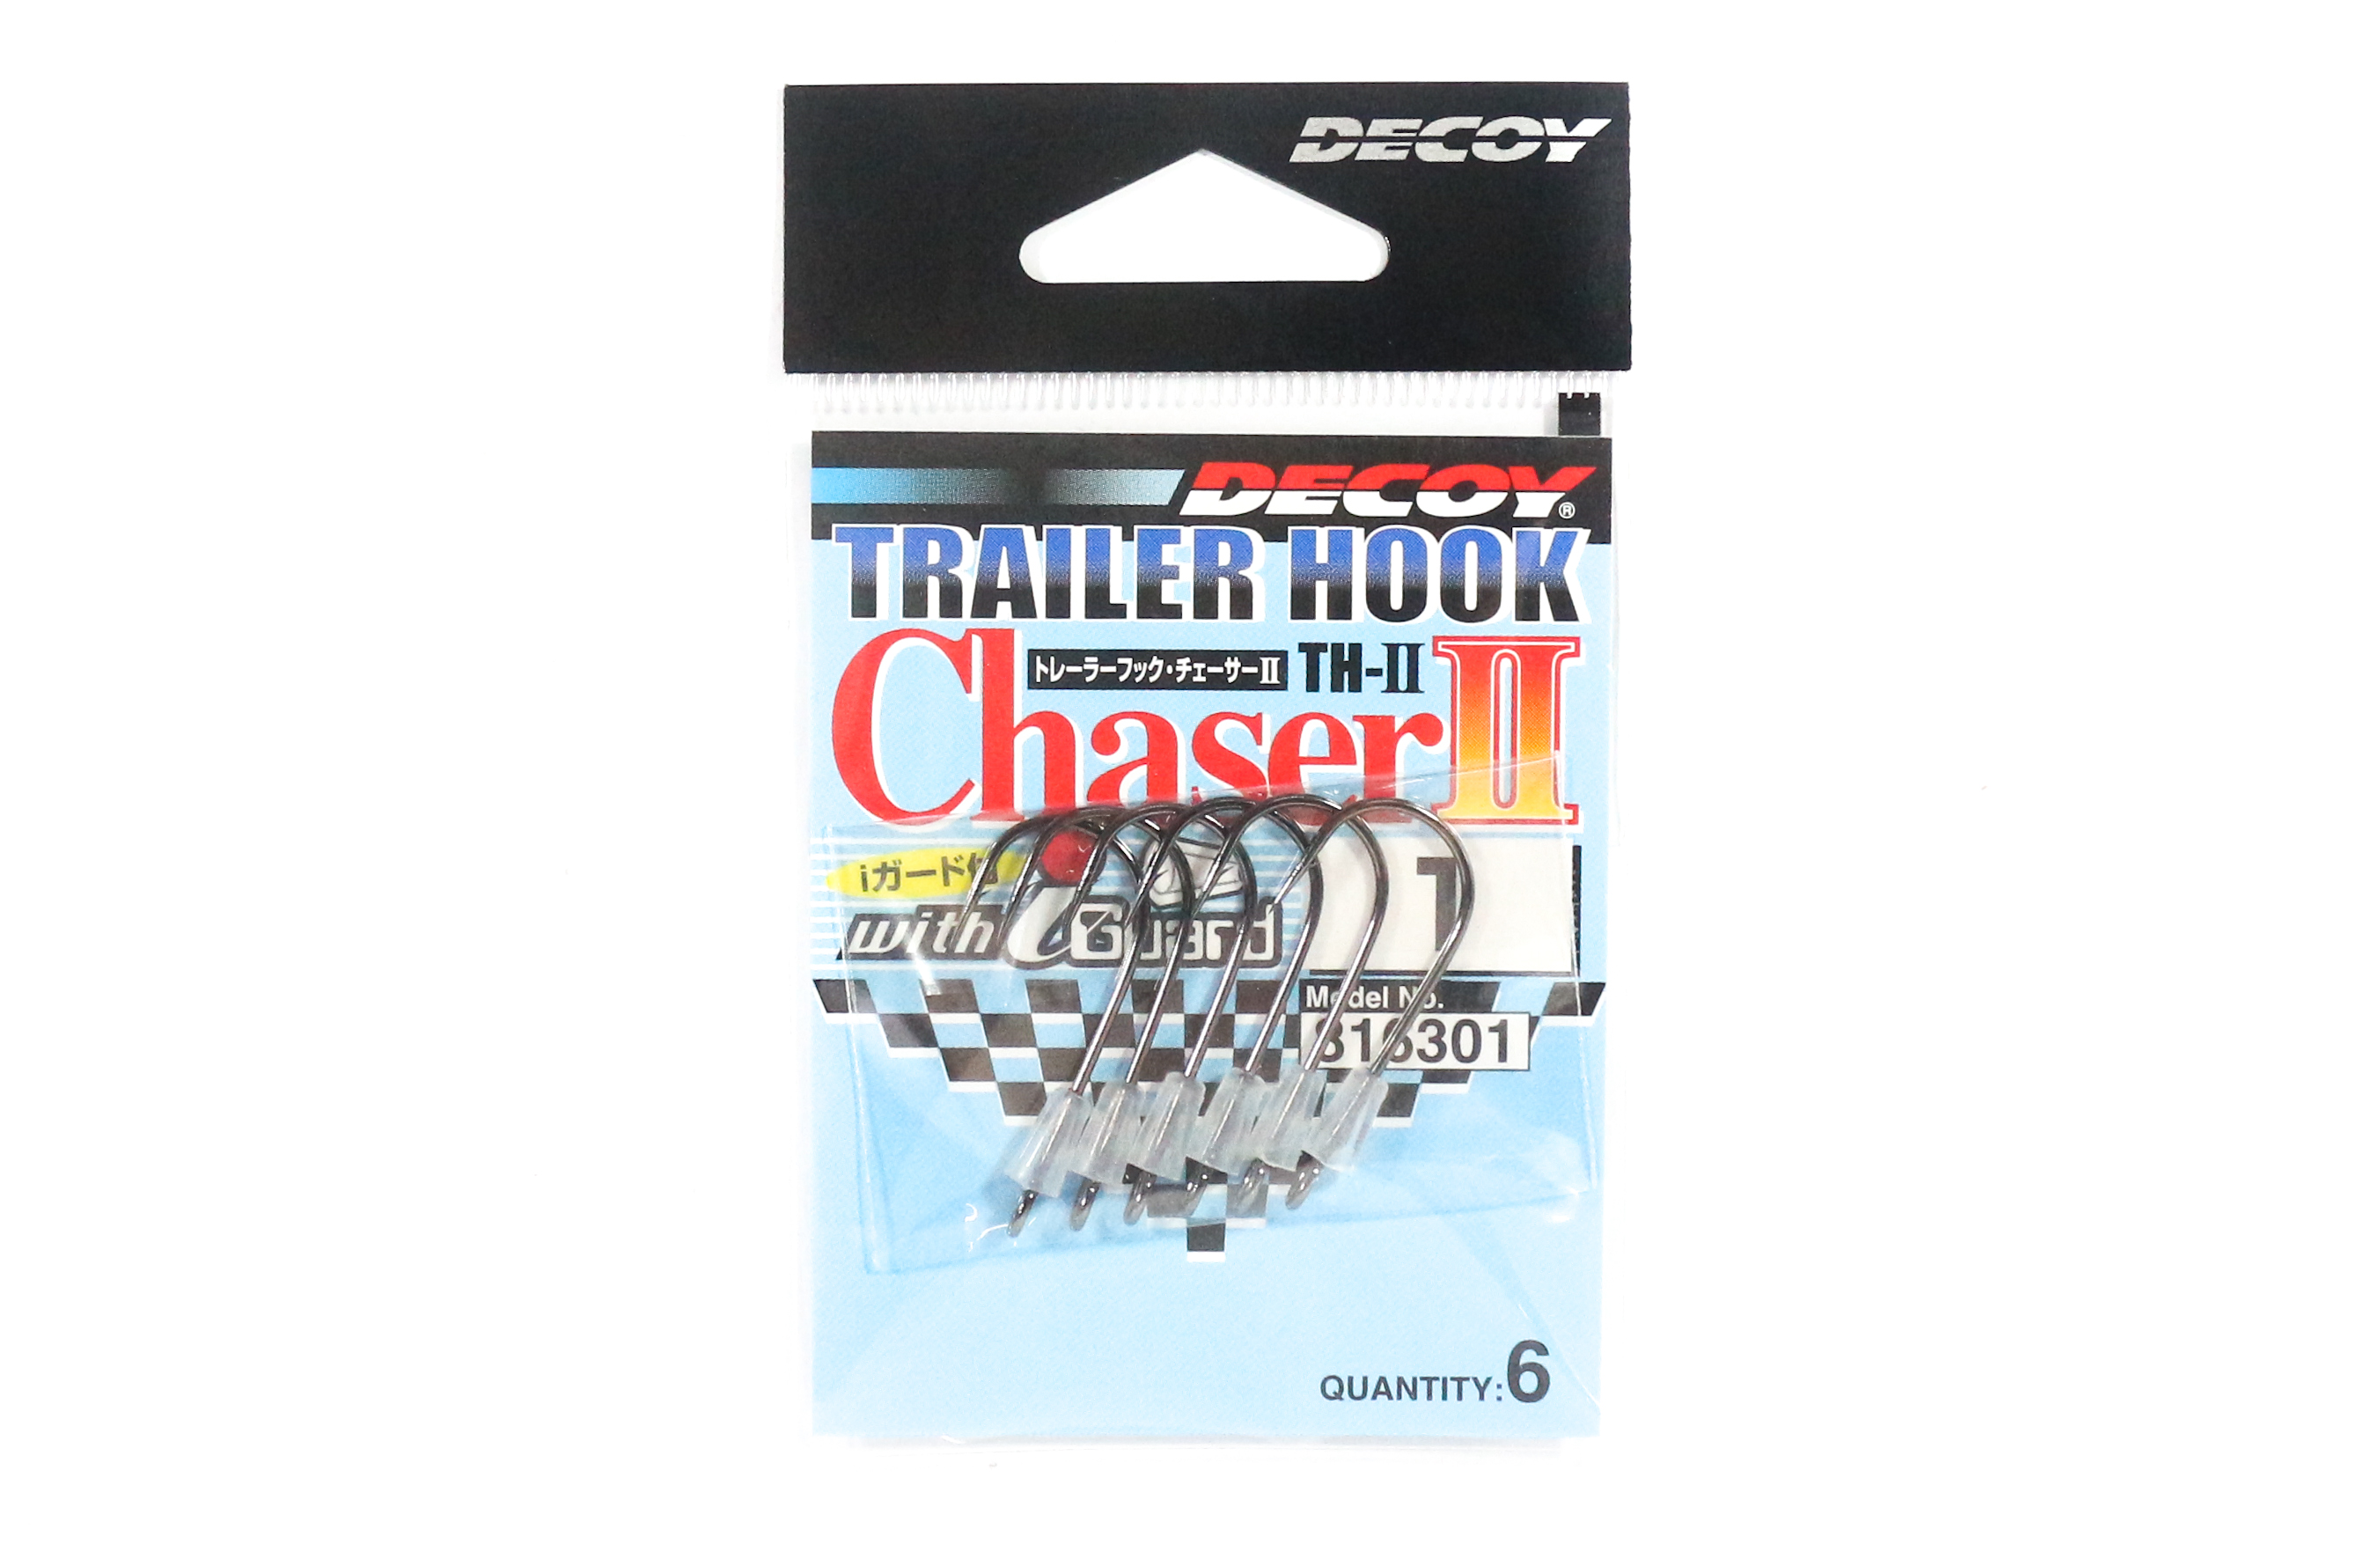 Decoy TH-II Trailer Hook Chaser with I Guard Size 1 (6301)